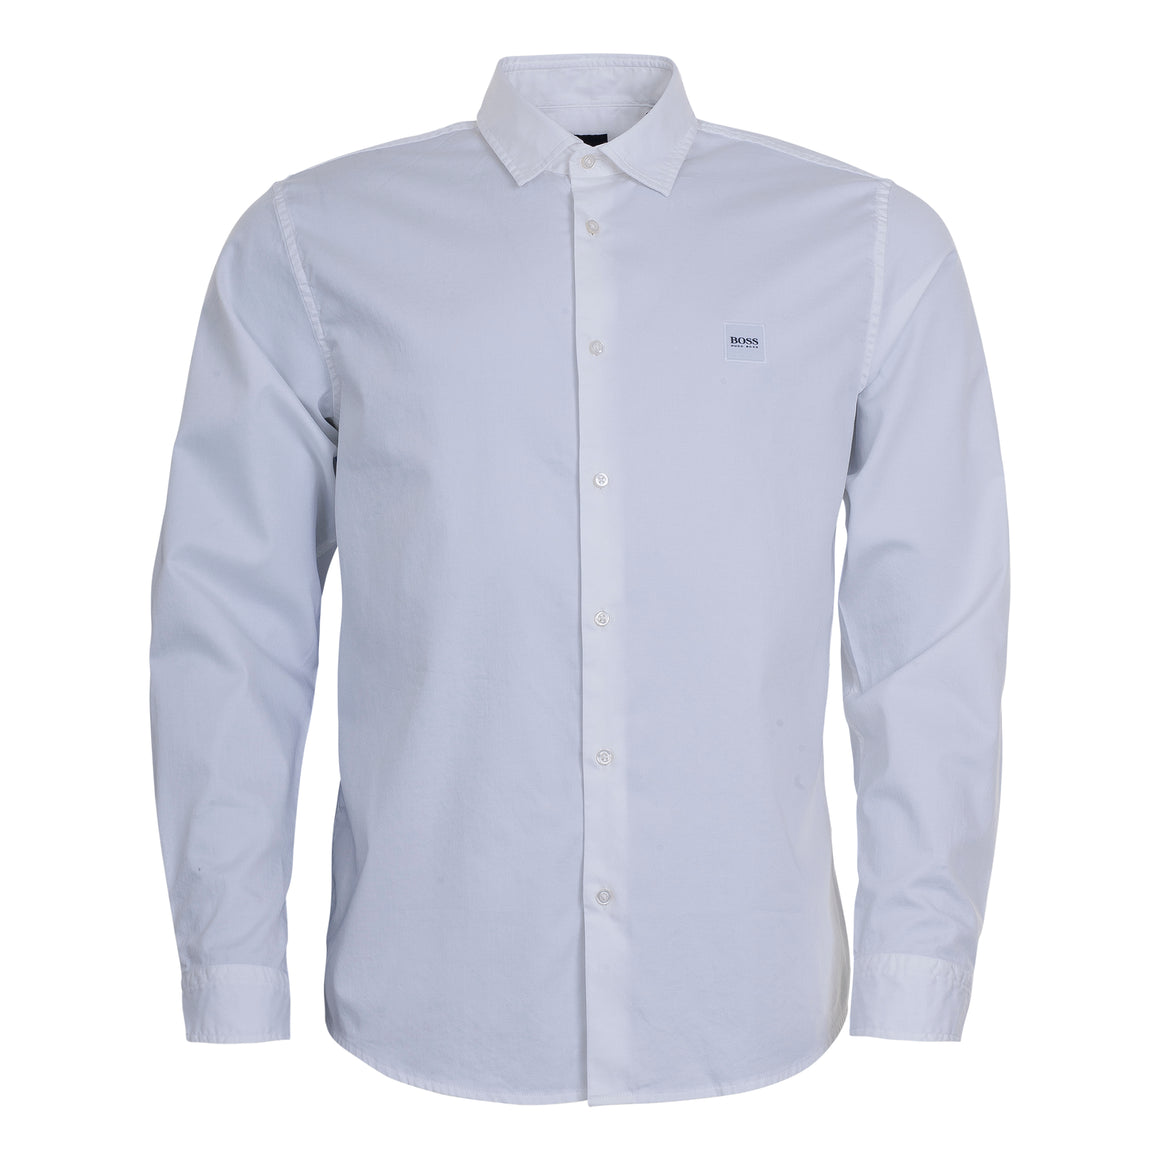 Mypo 2 L/Sleeve Shirt for Men in White